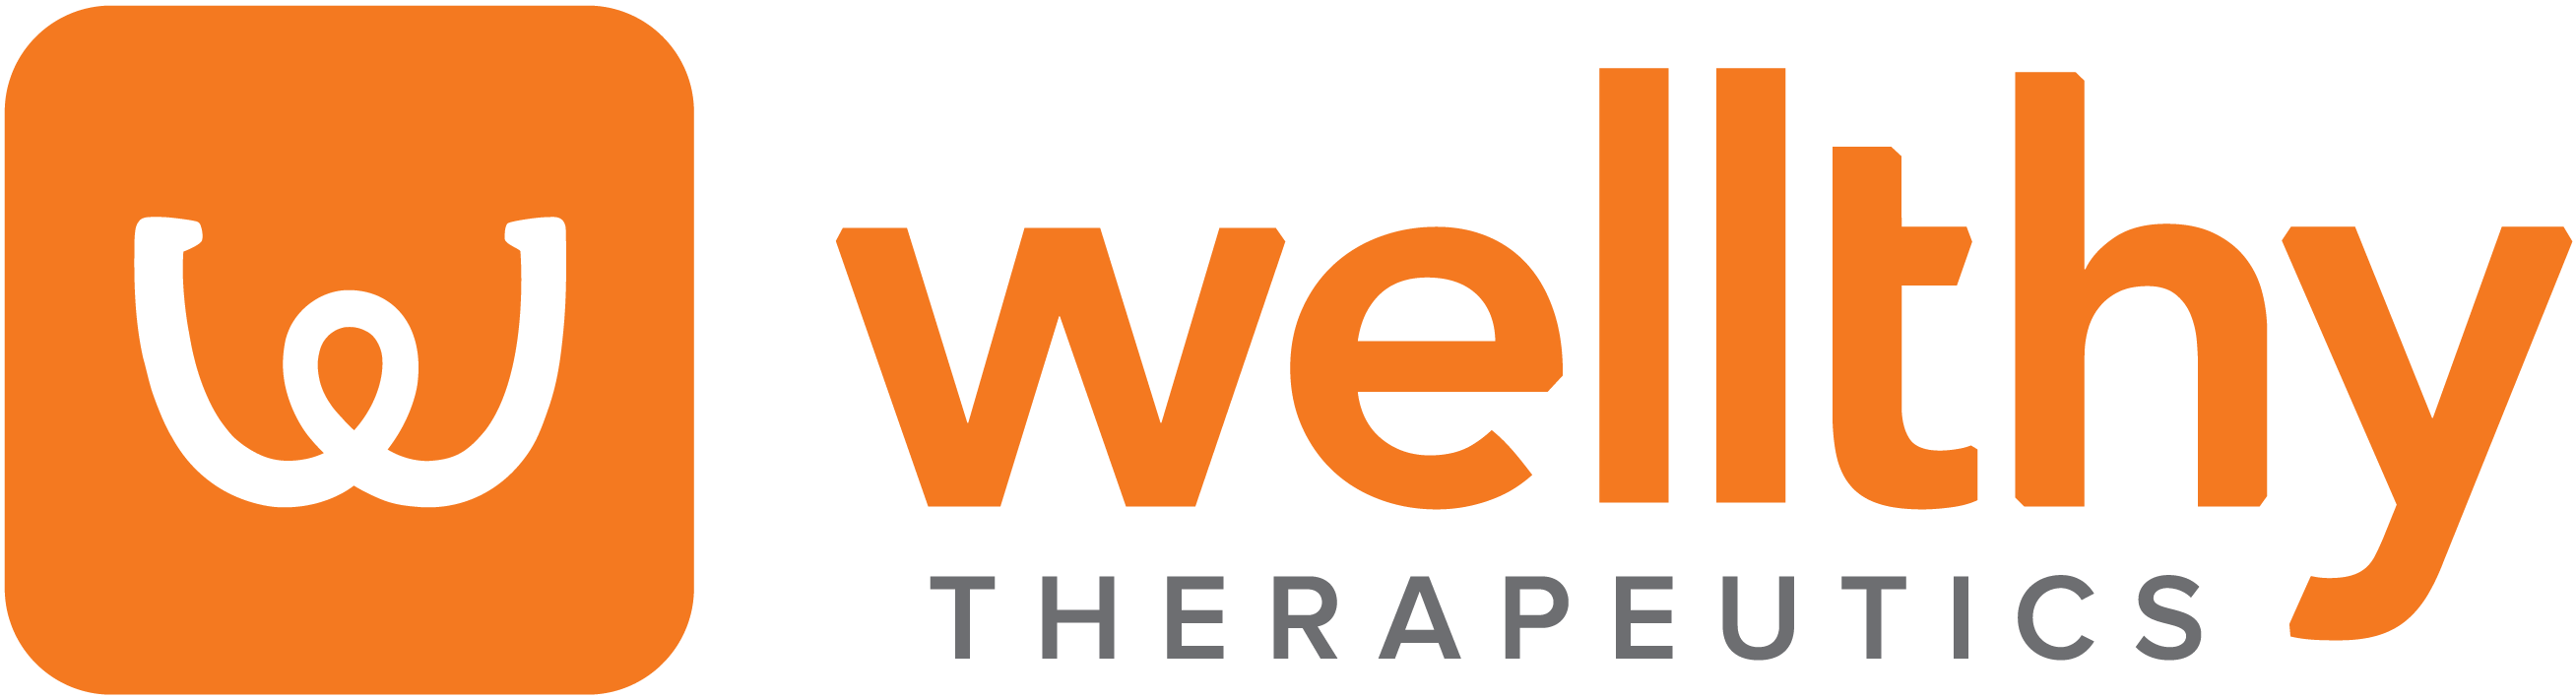 Wellthy Therapeutics Job Openings